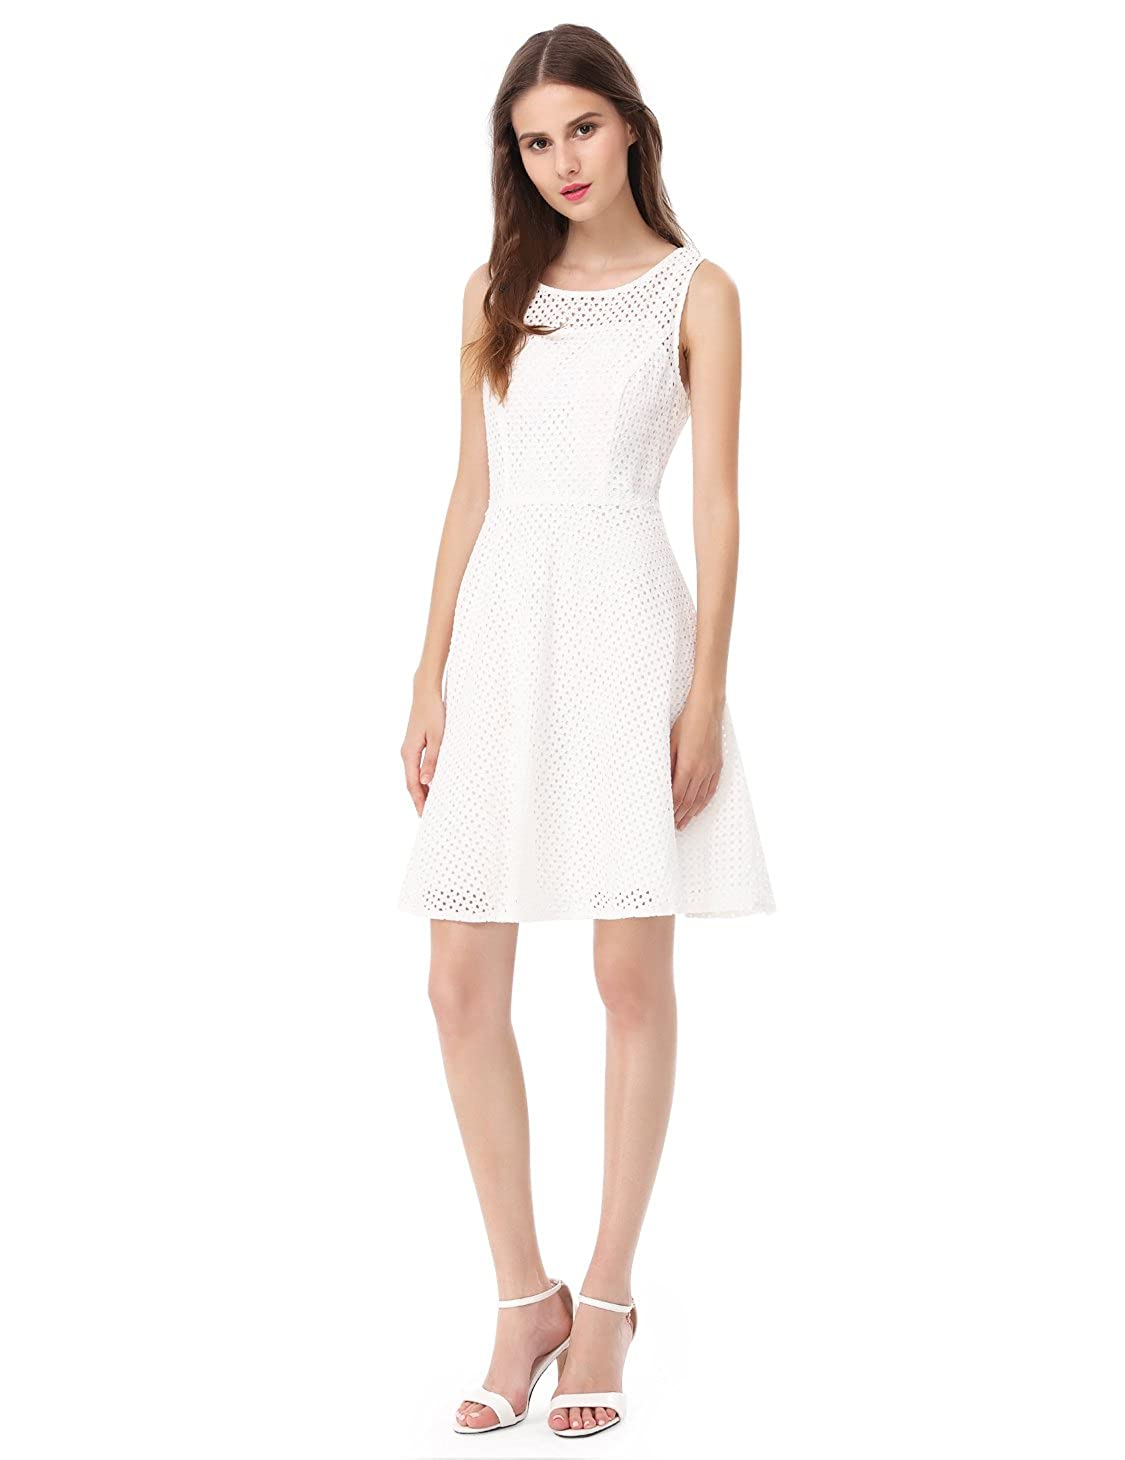 fd49f579618c Alisa Pan Womens Fit and Flare Short Simple Summer Dress 5504 at Amazon  Women's Clothing store: